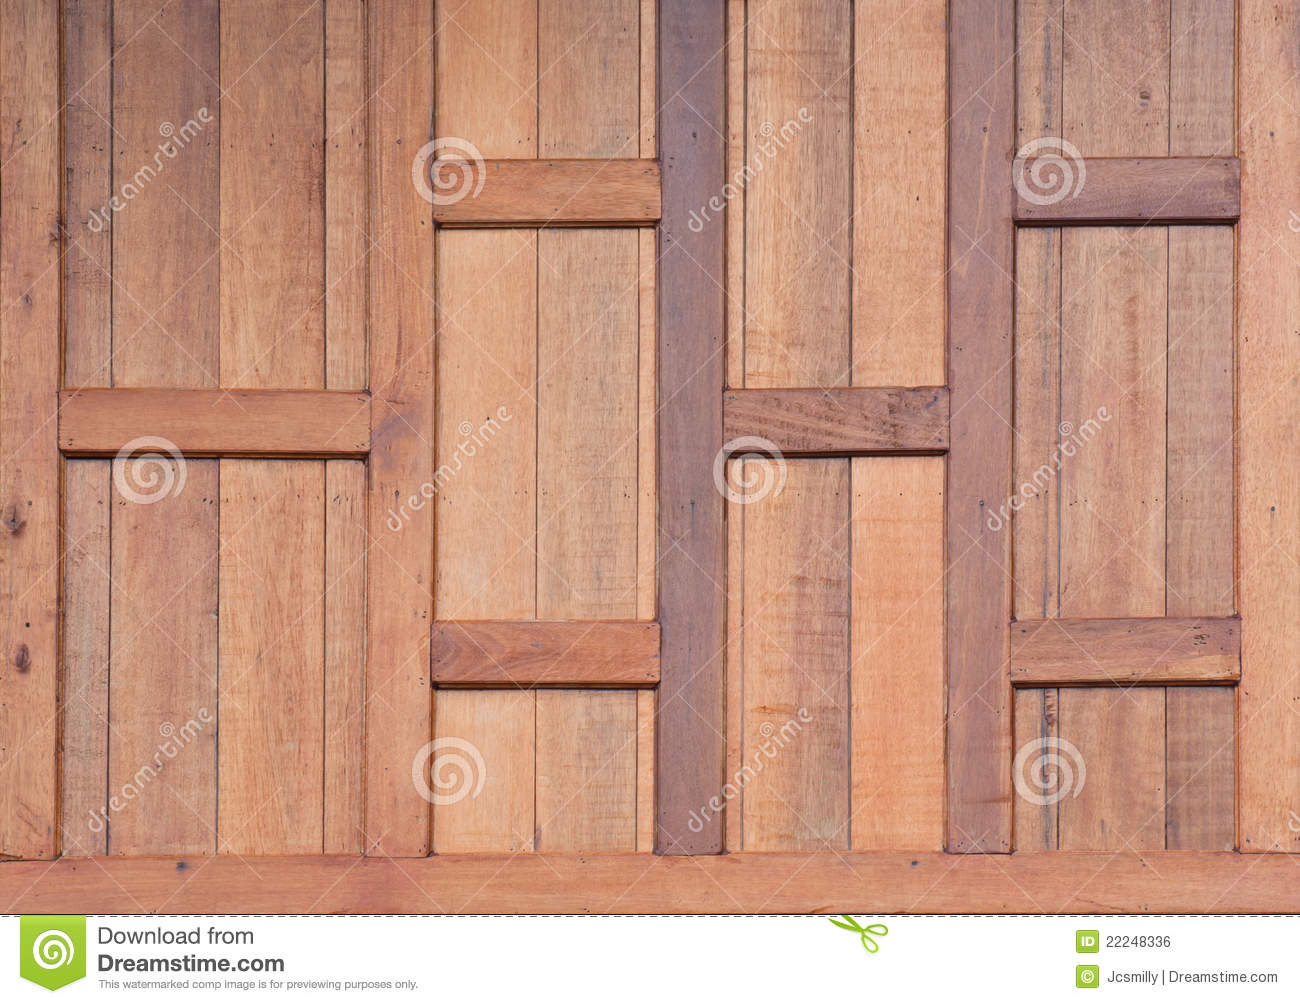 Brick Wall And Wooden Floor Royalty Free Stock Photo HD Wallpaper 1708